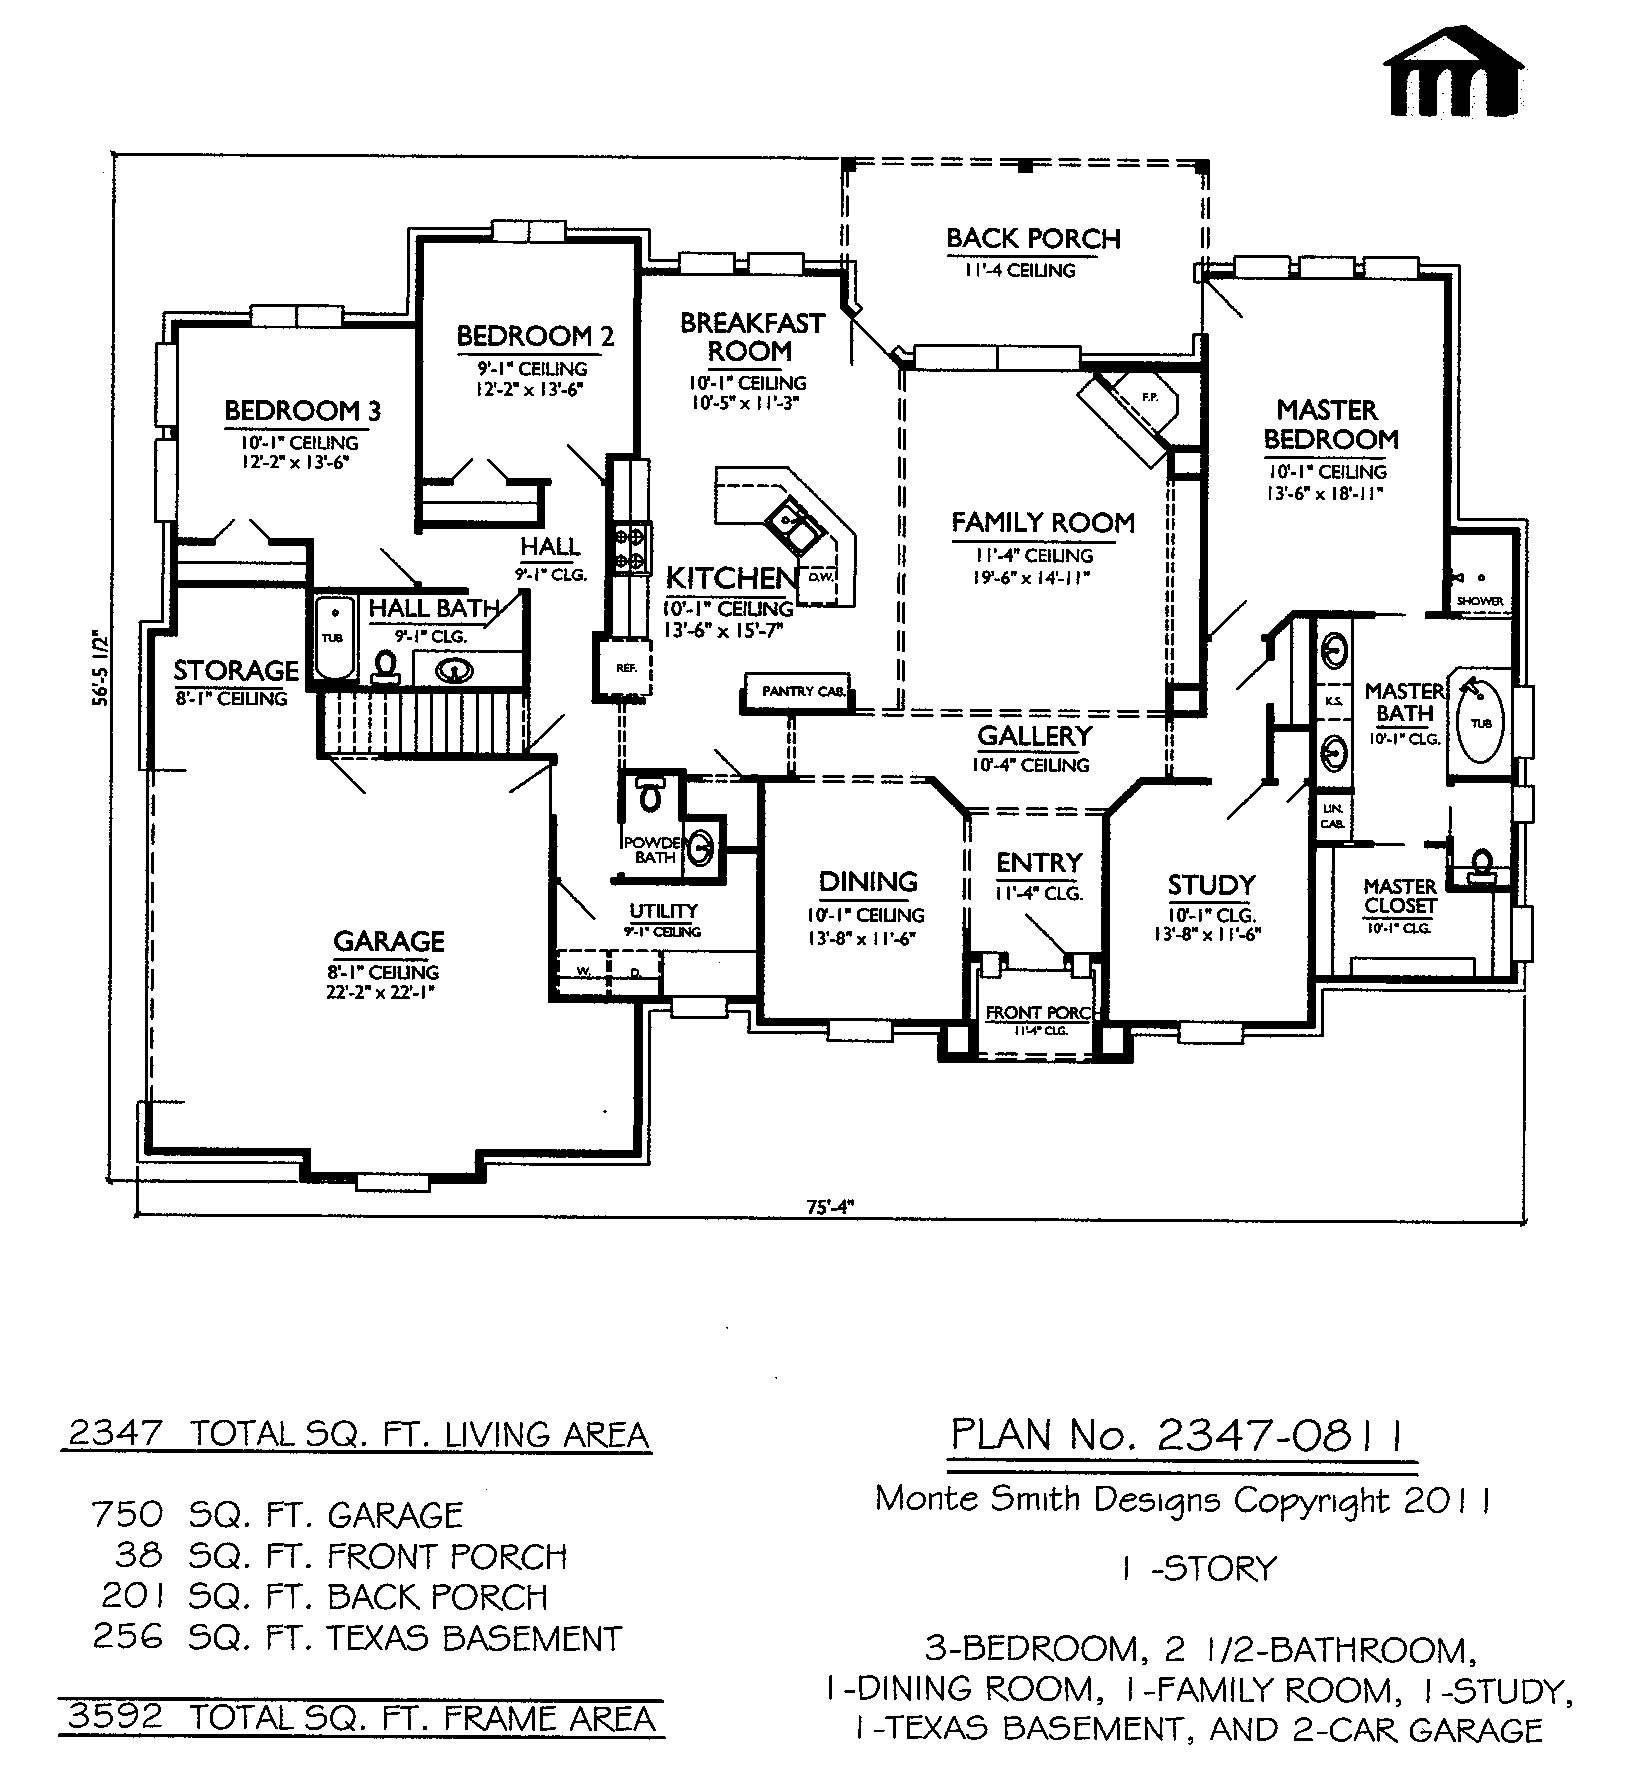 2 story 3 bedroom house plans vdara two bedroom loft 1 1 for One story with loft house plans